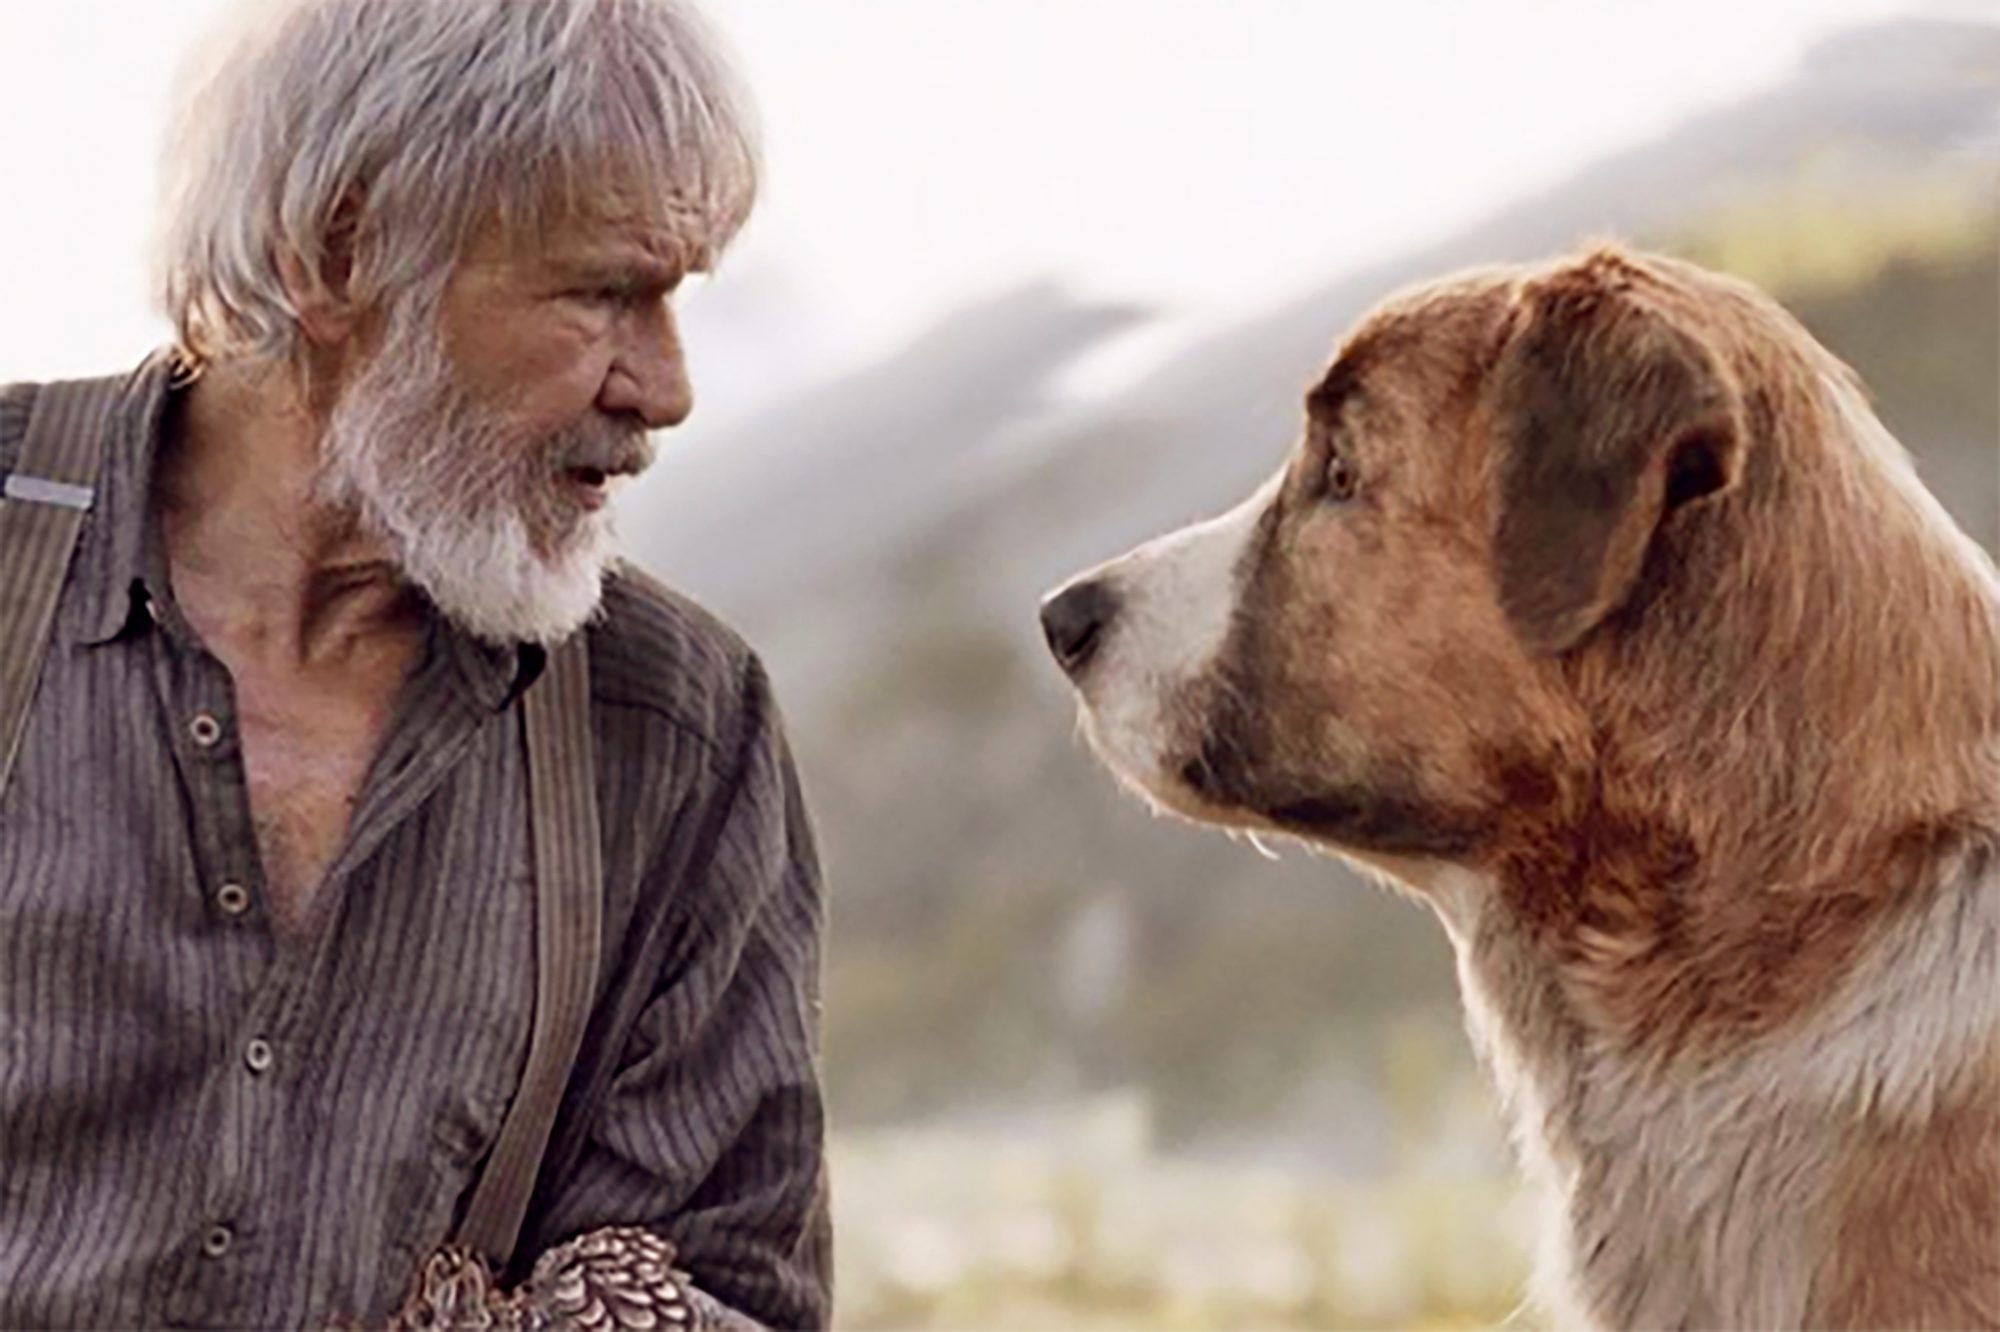 Older bearded actor and adult dog look at each other